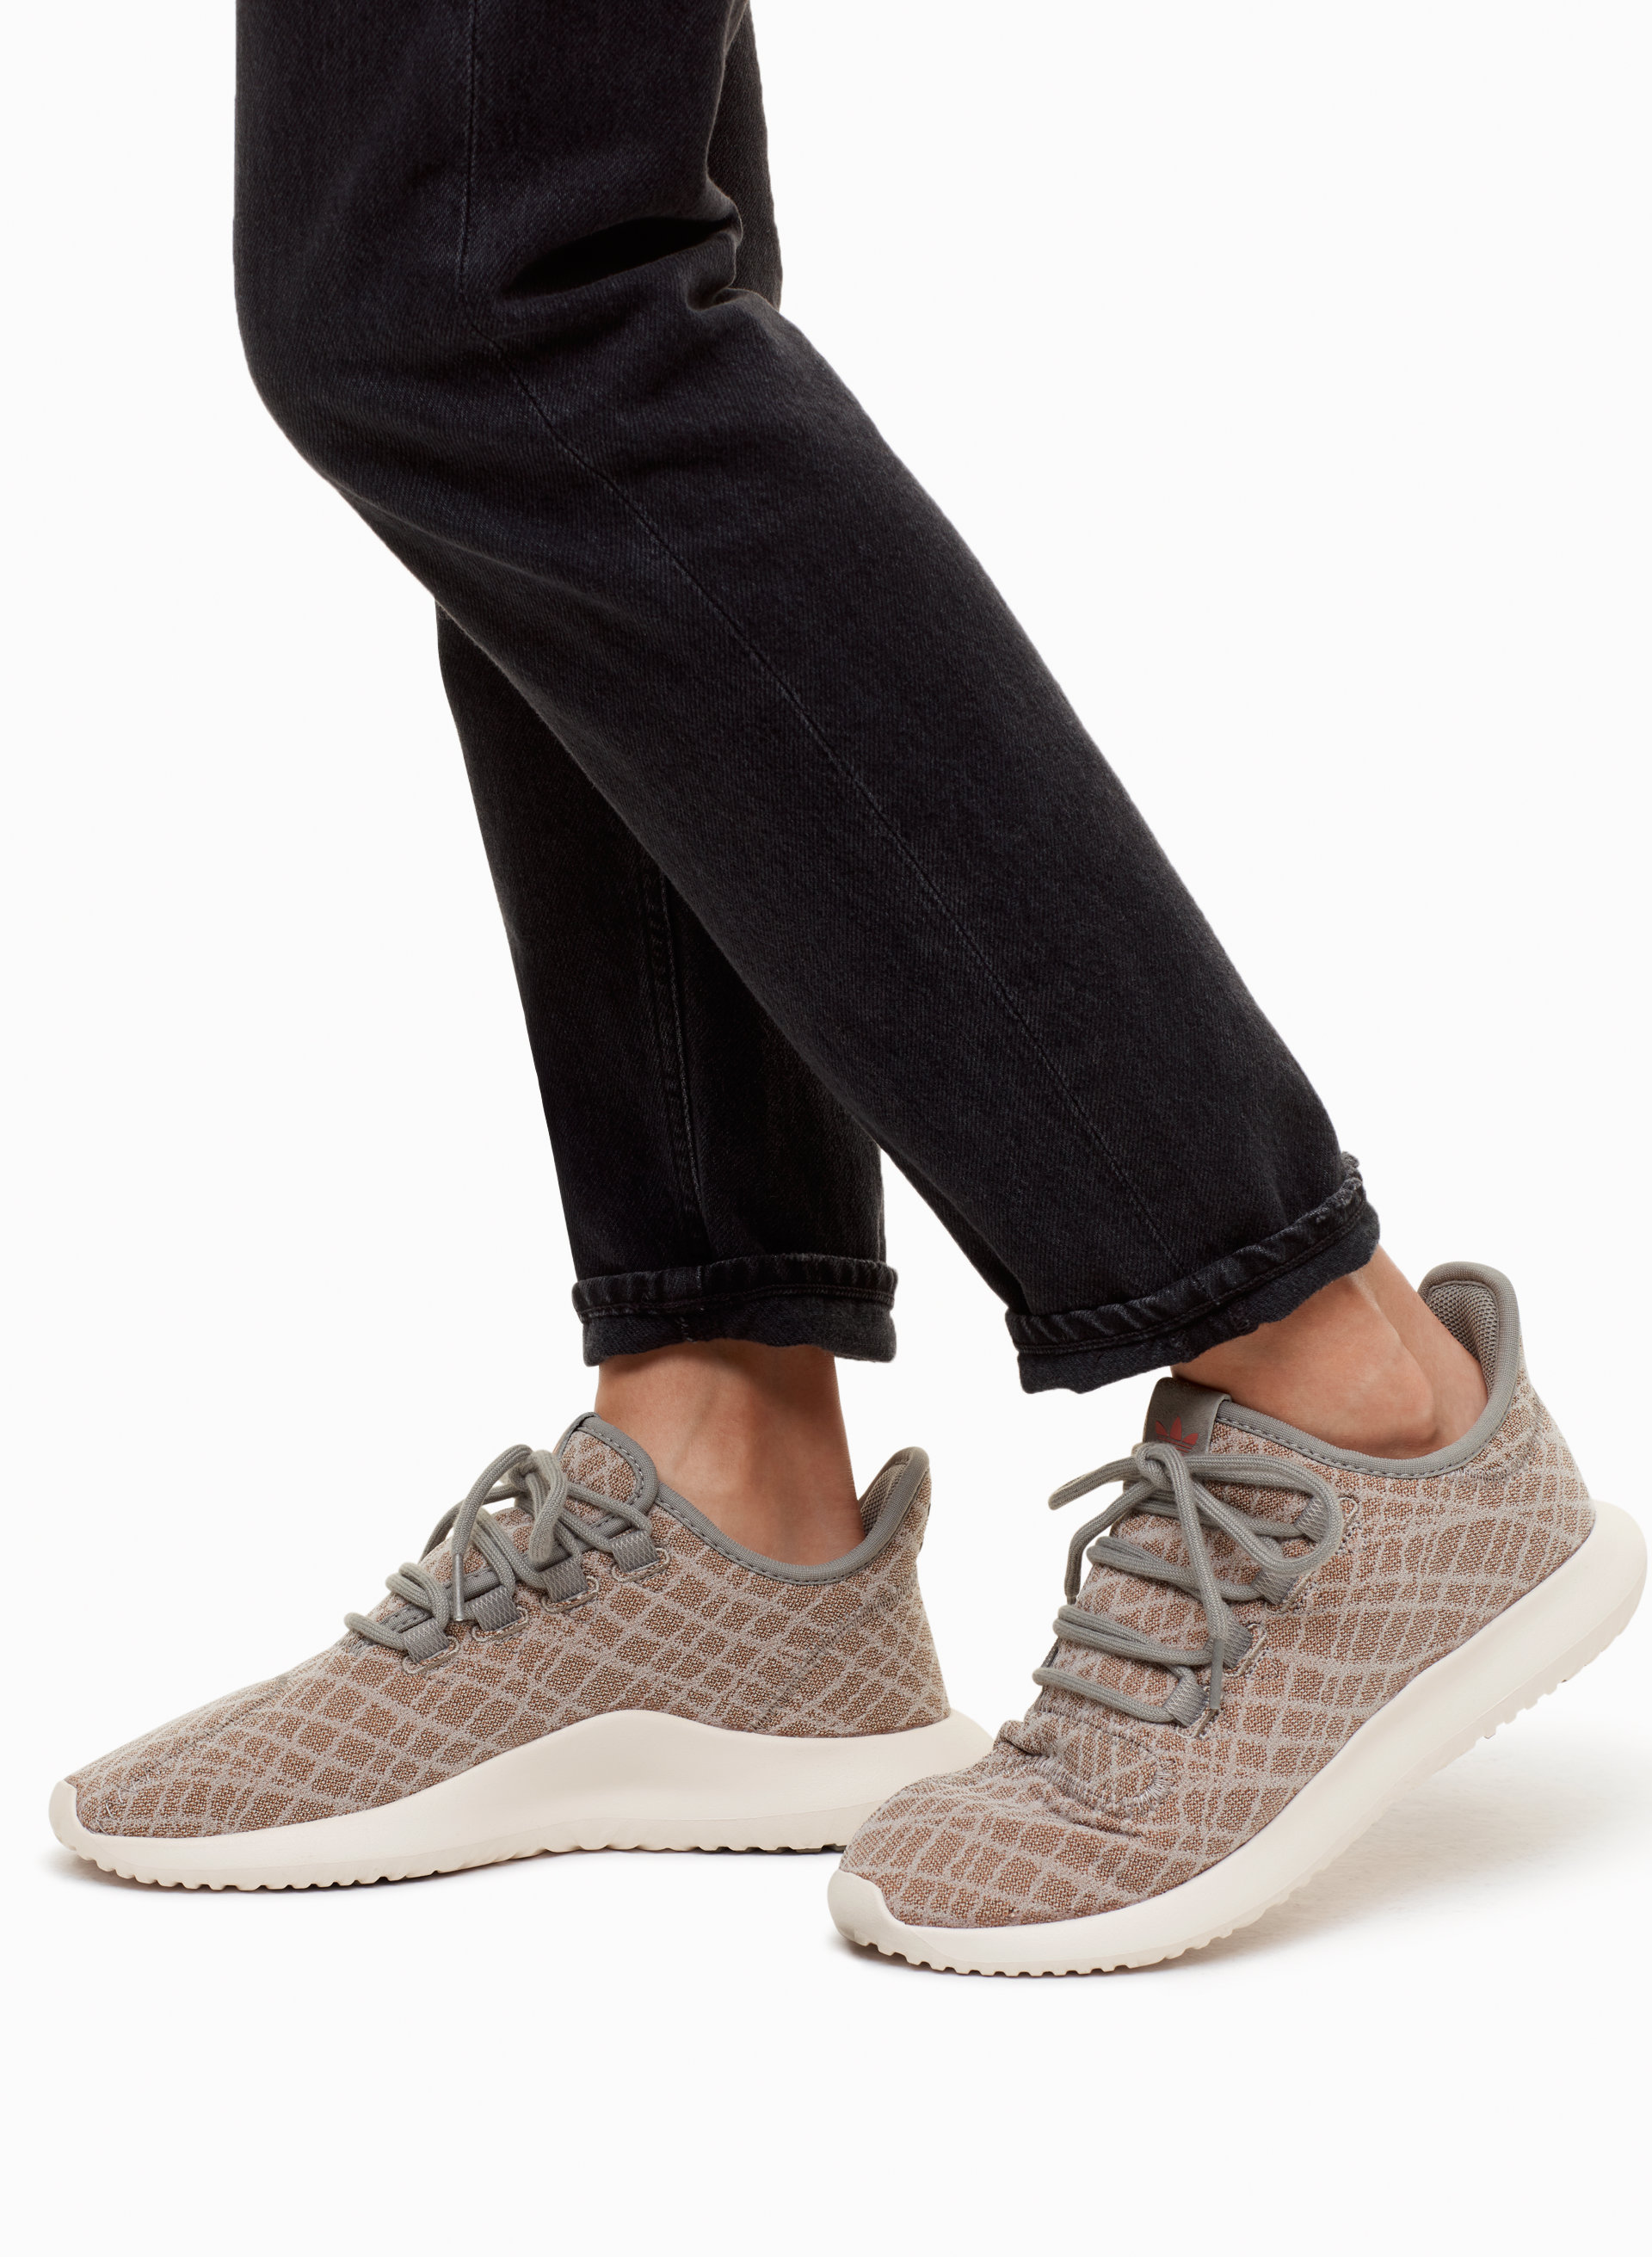 adidas Tubular Shadow Sneakers in White Grey Coral Akira